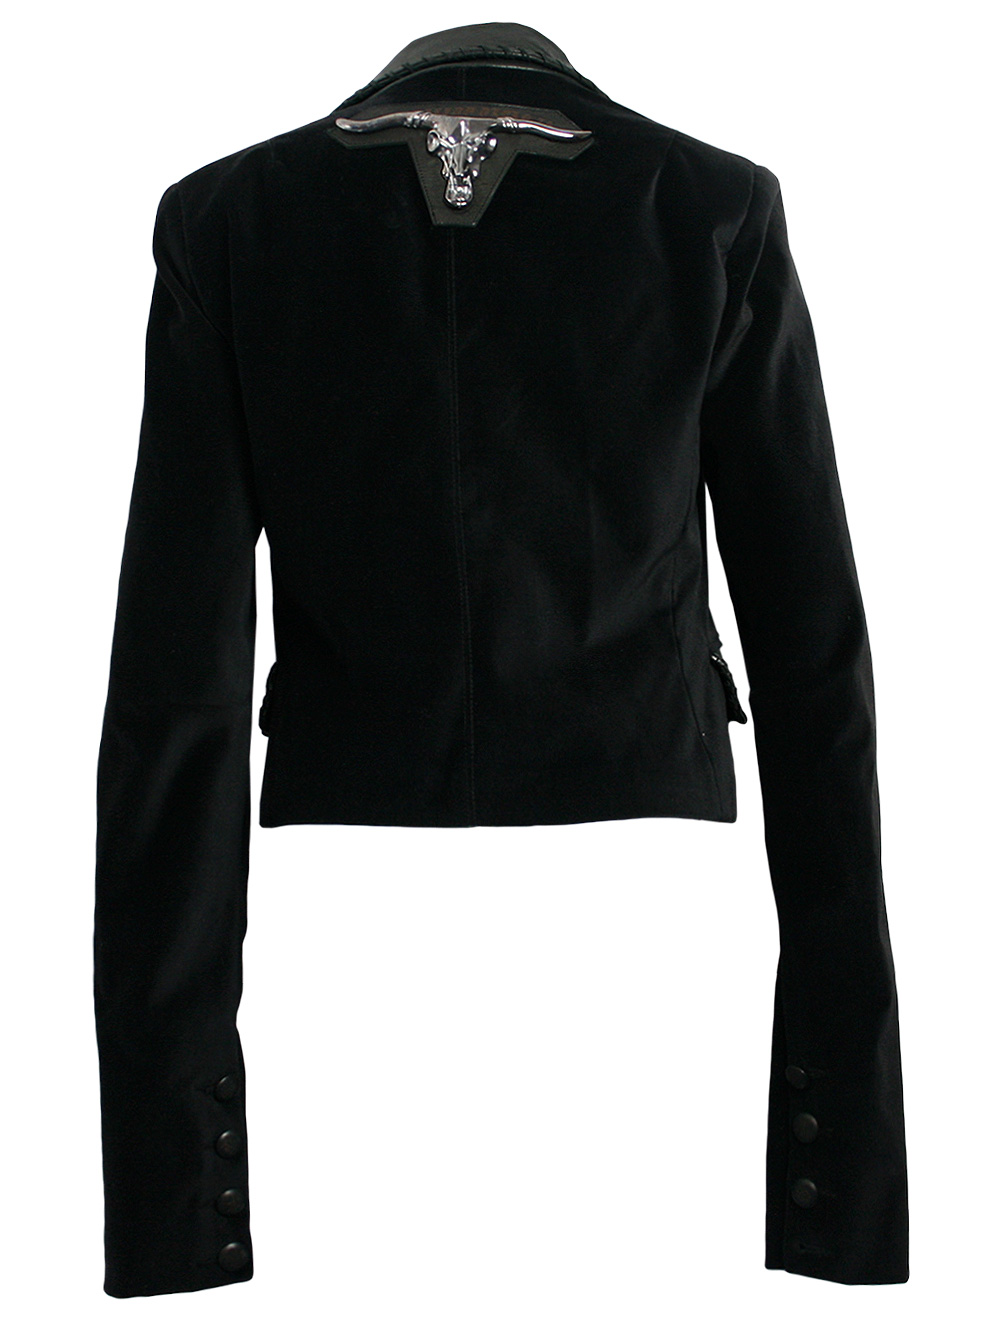 philipp plein damen blazer jacke in schwarz bull neu sehr edel gr l ebay. Black Bedroom Furniture Sets. Home Design Ideas